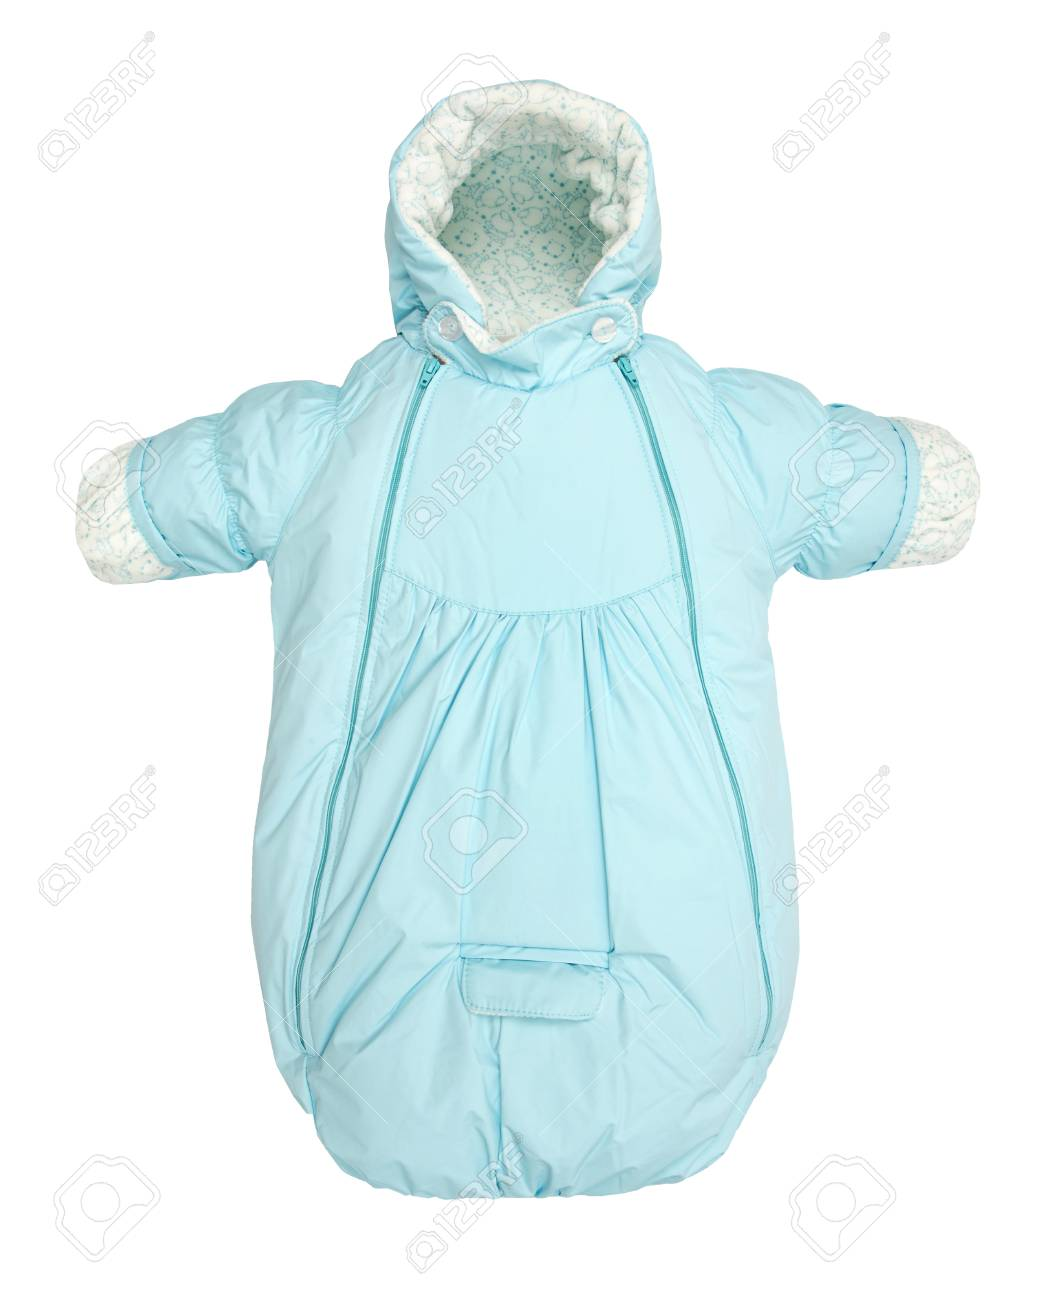 c78e647a1 Baby snowsuit Coat bag on a white background